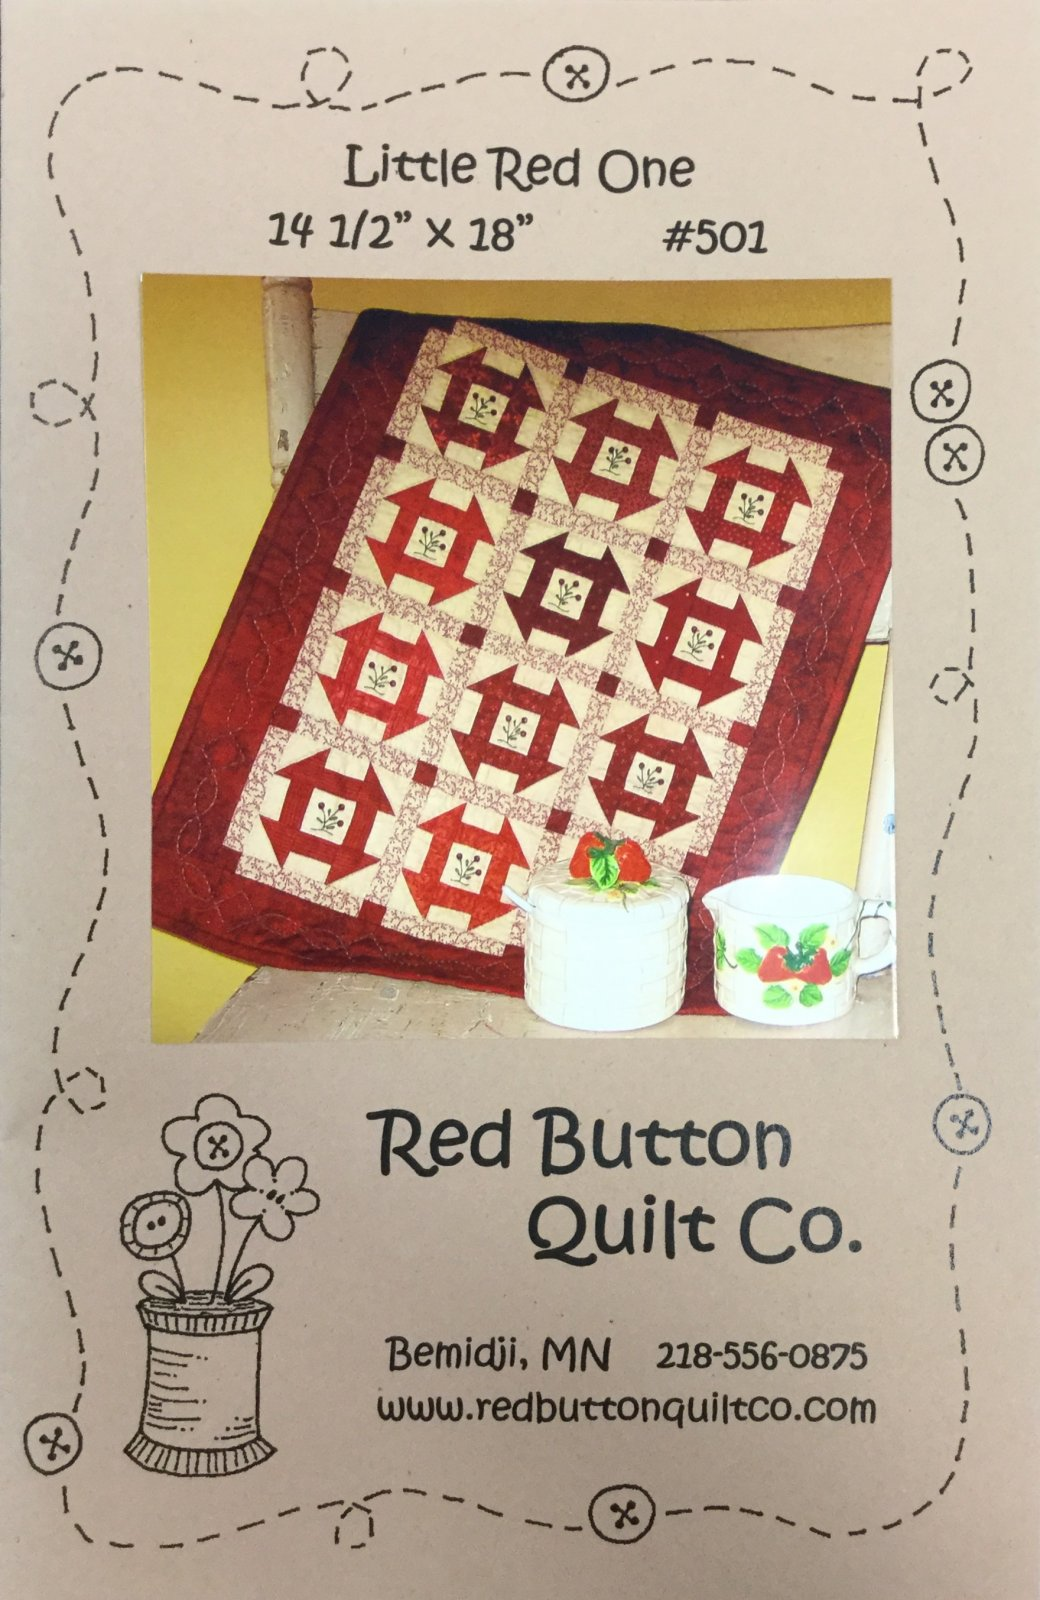 Little Red One quilt Kit